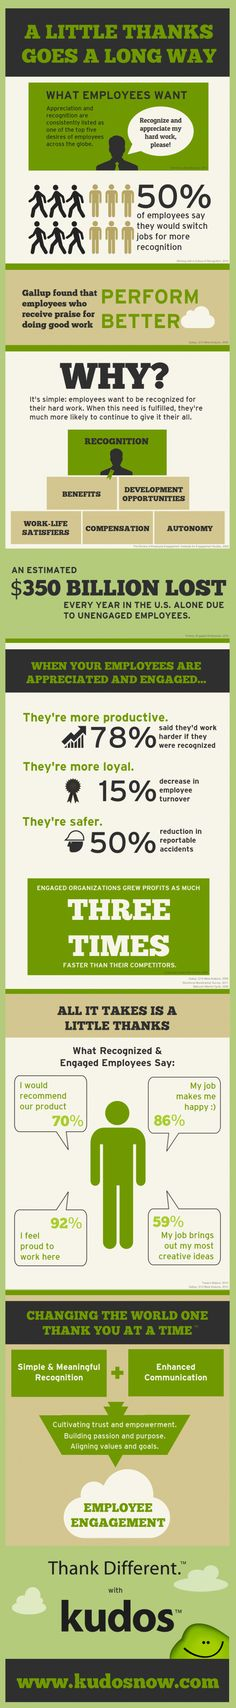 Great advice for people who employee people as well as employees. Love the positive message on this infographic!